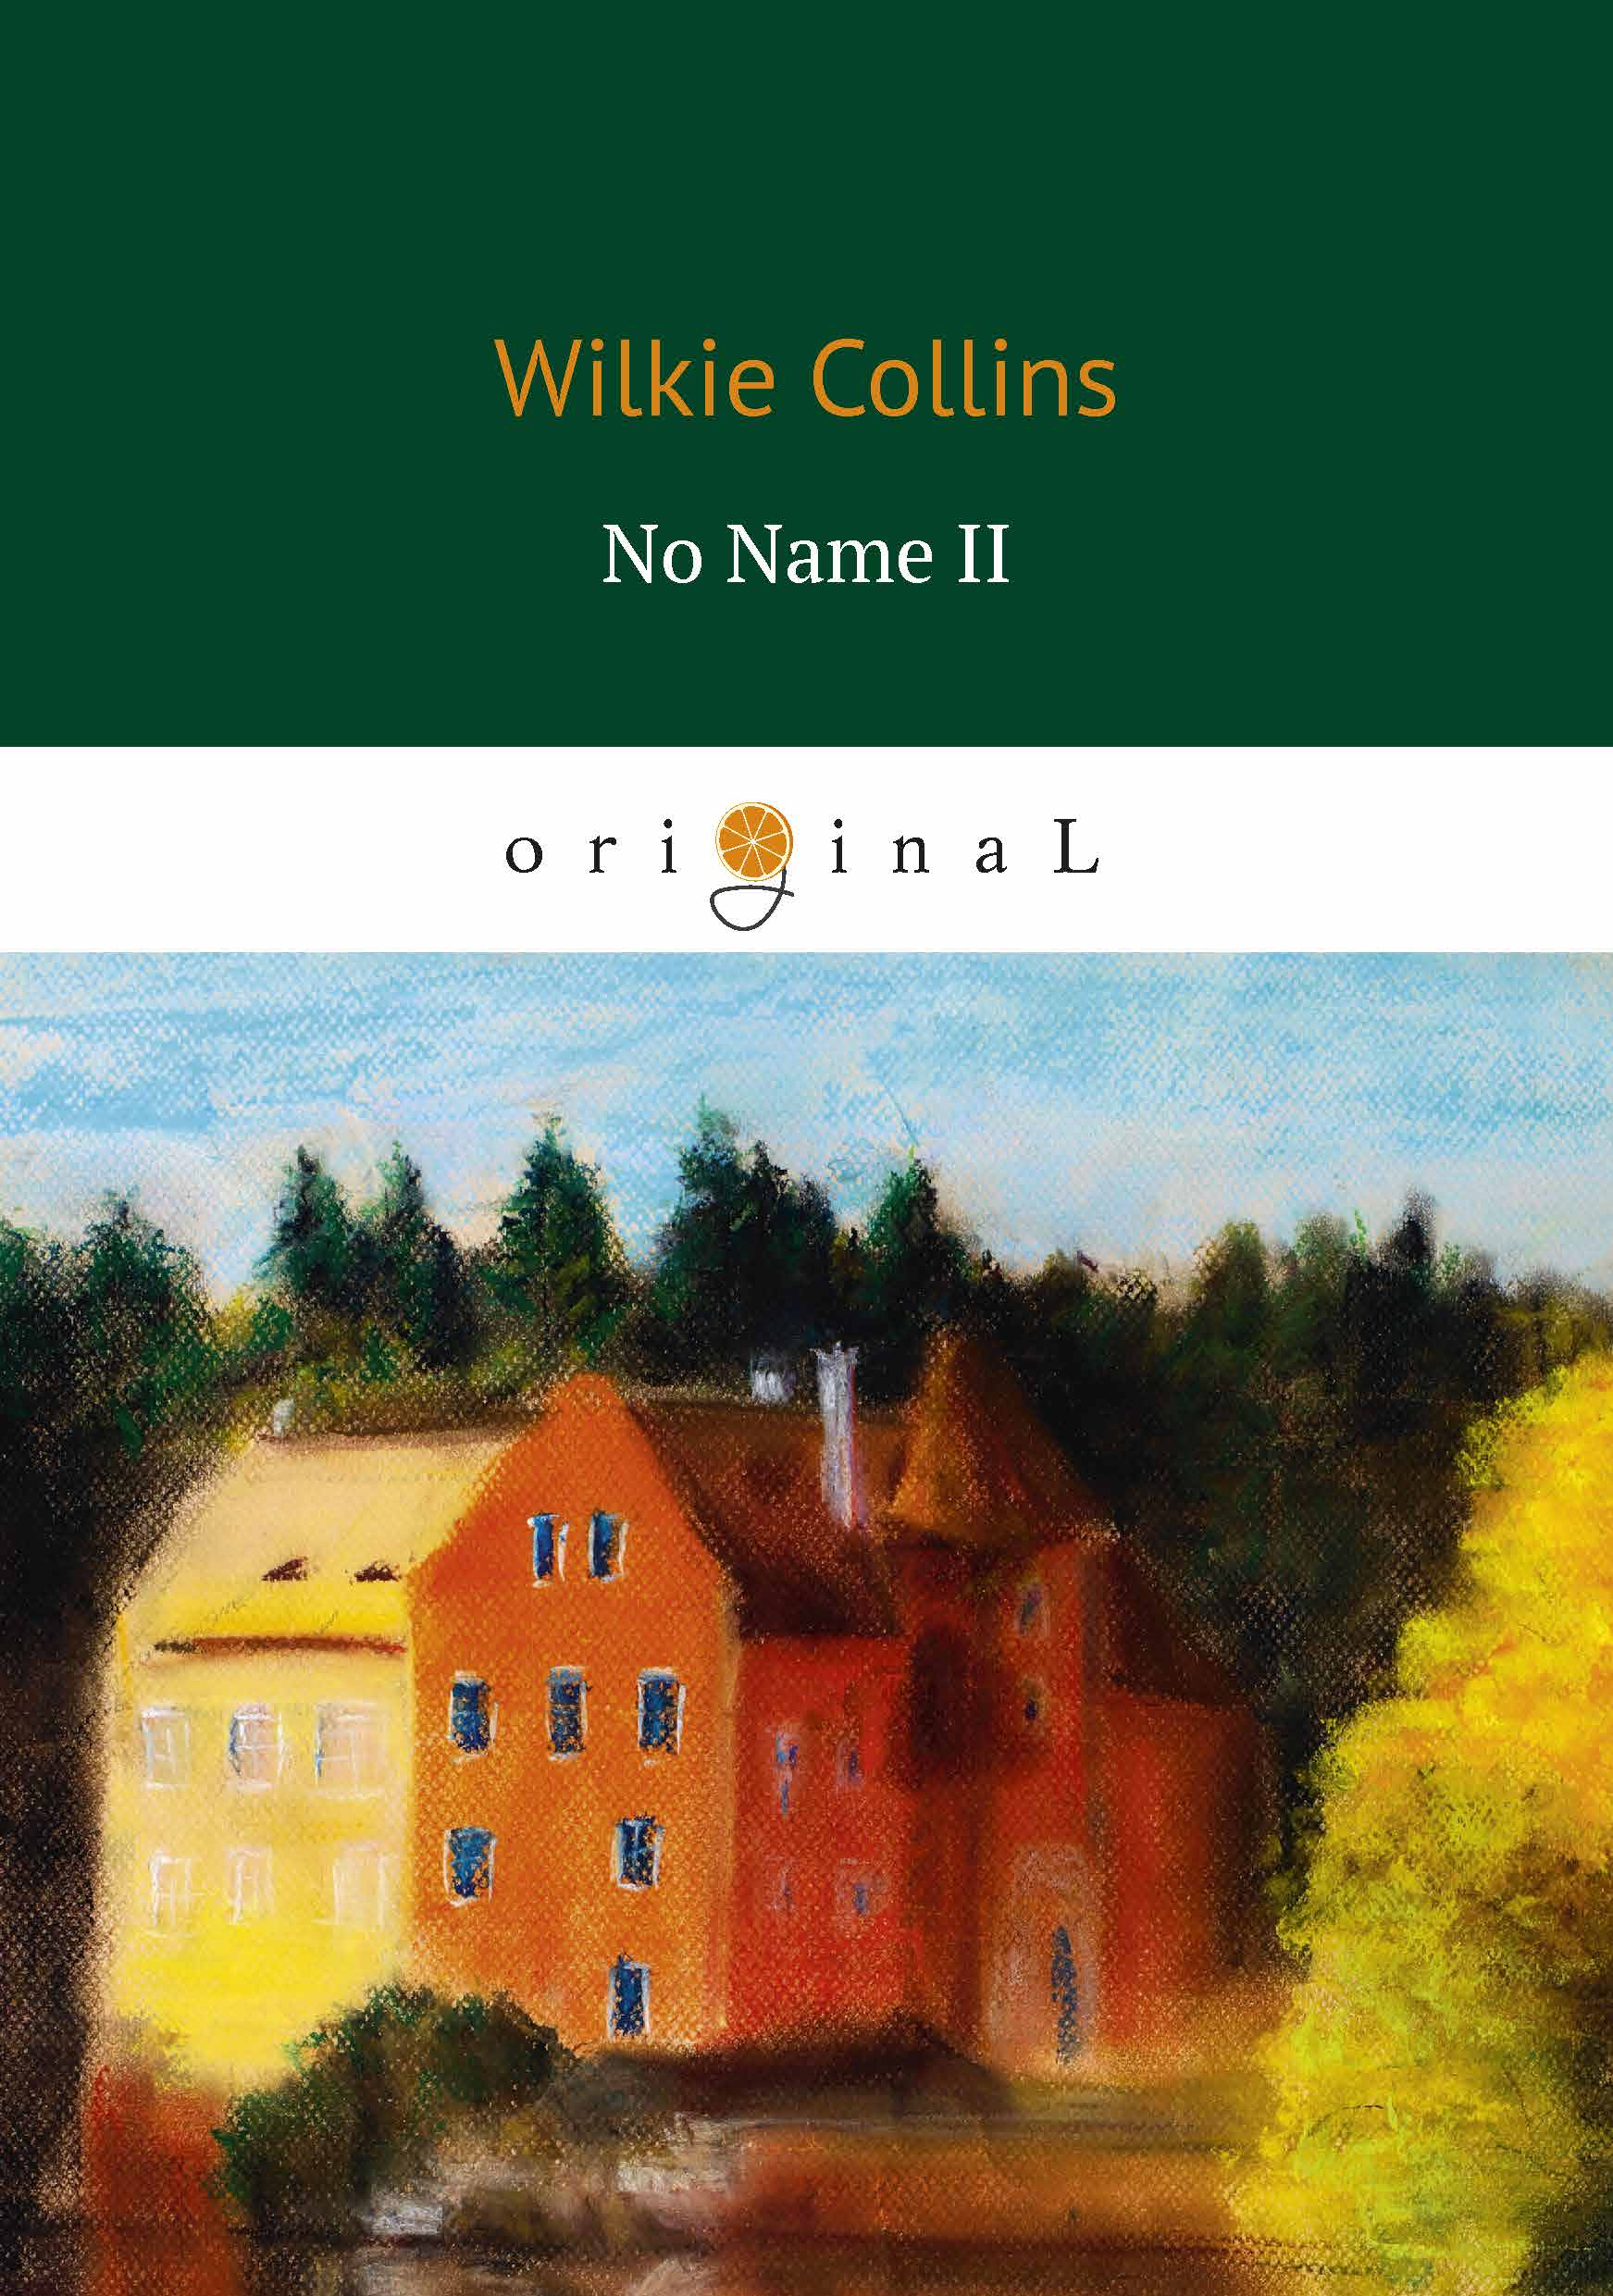 Wilkie Collins No Name II